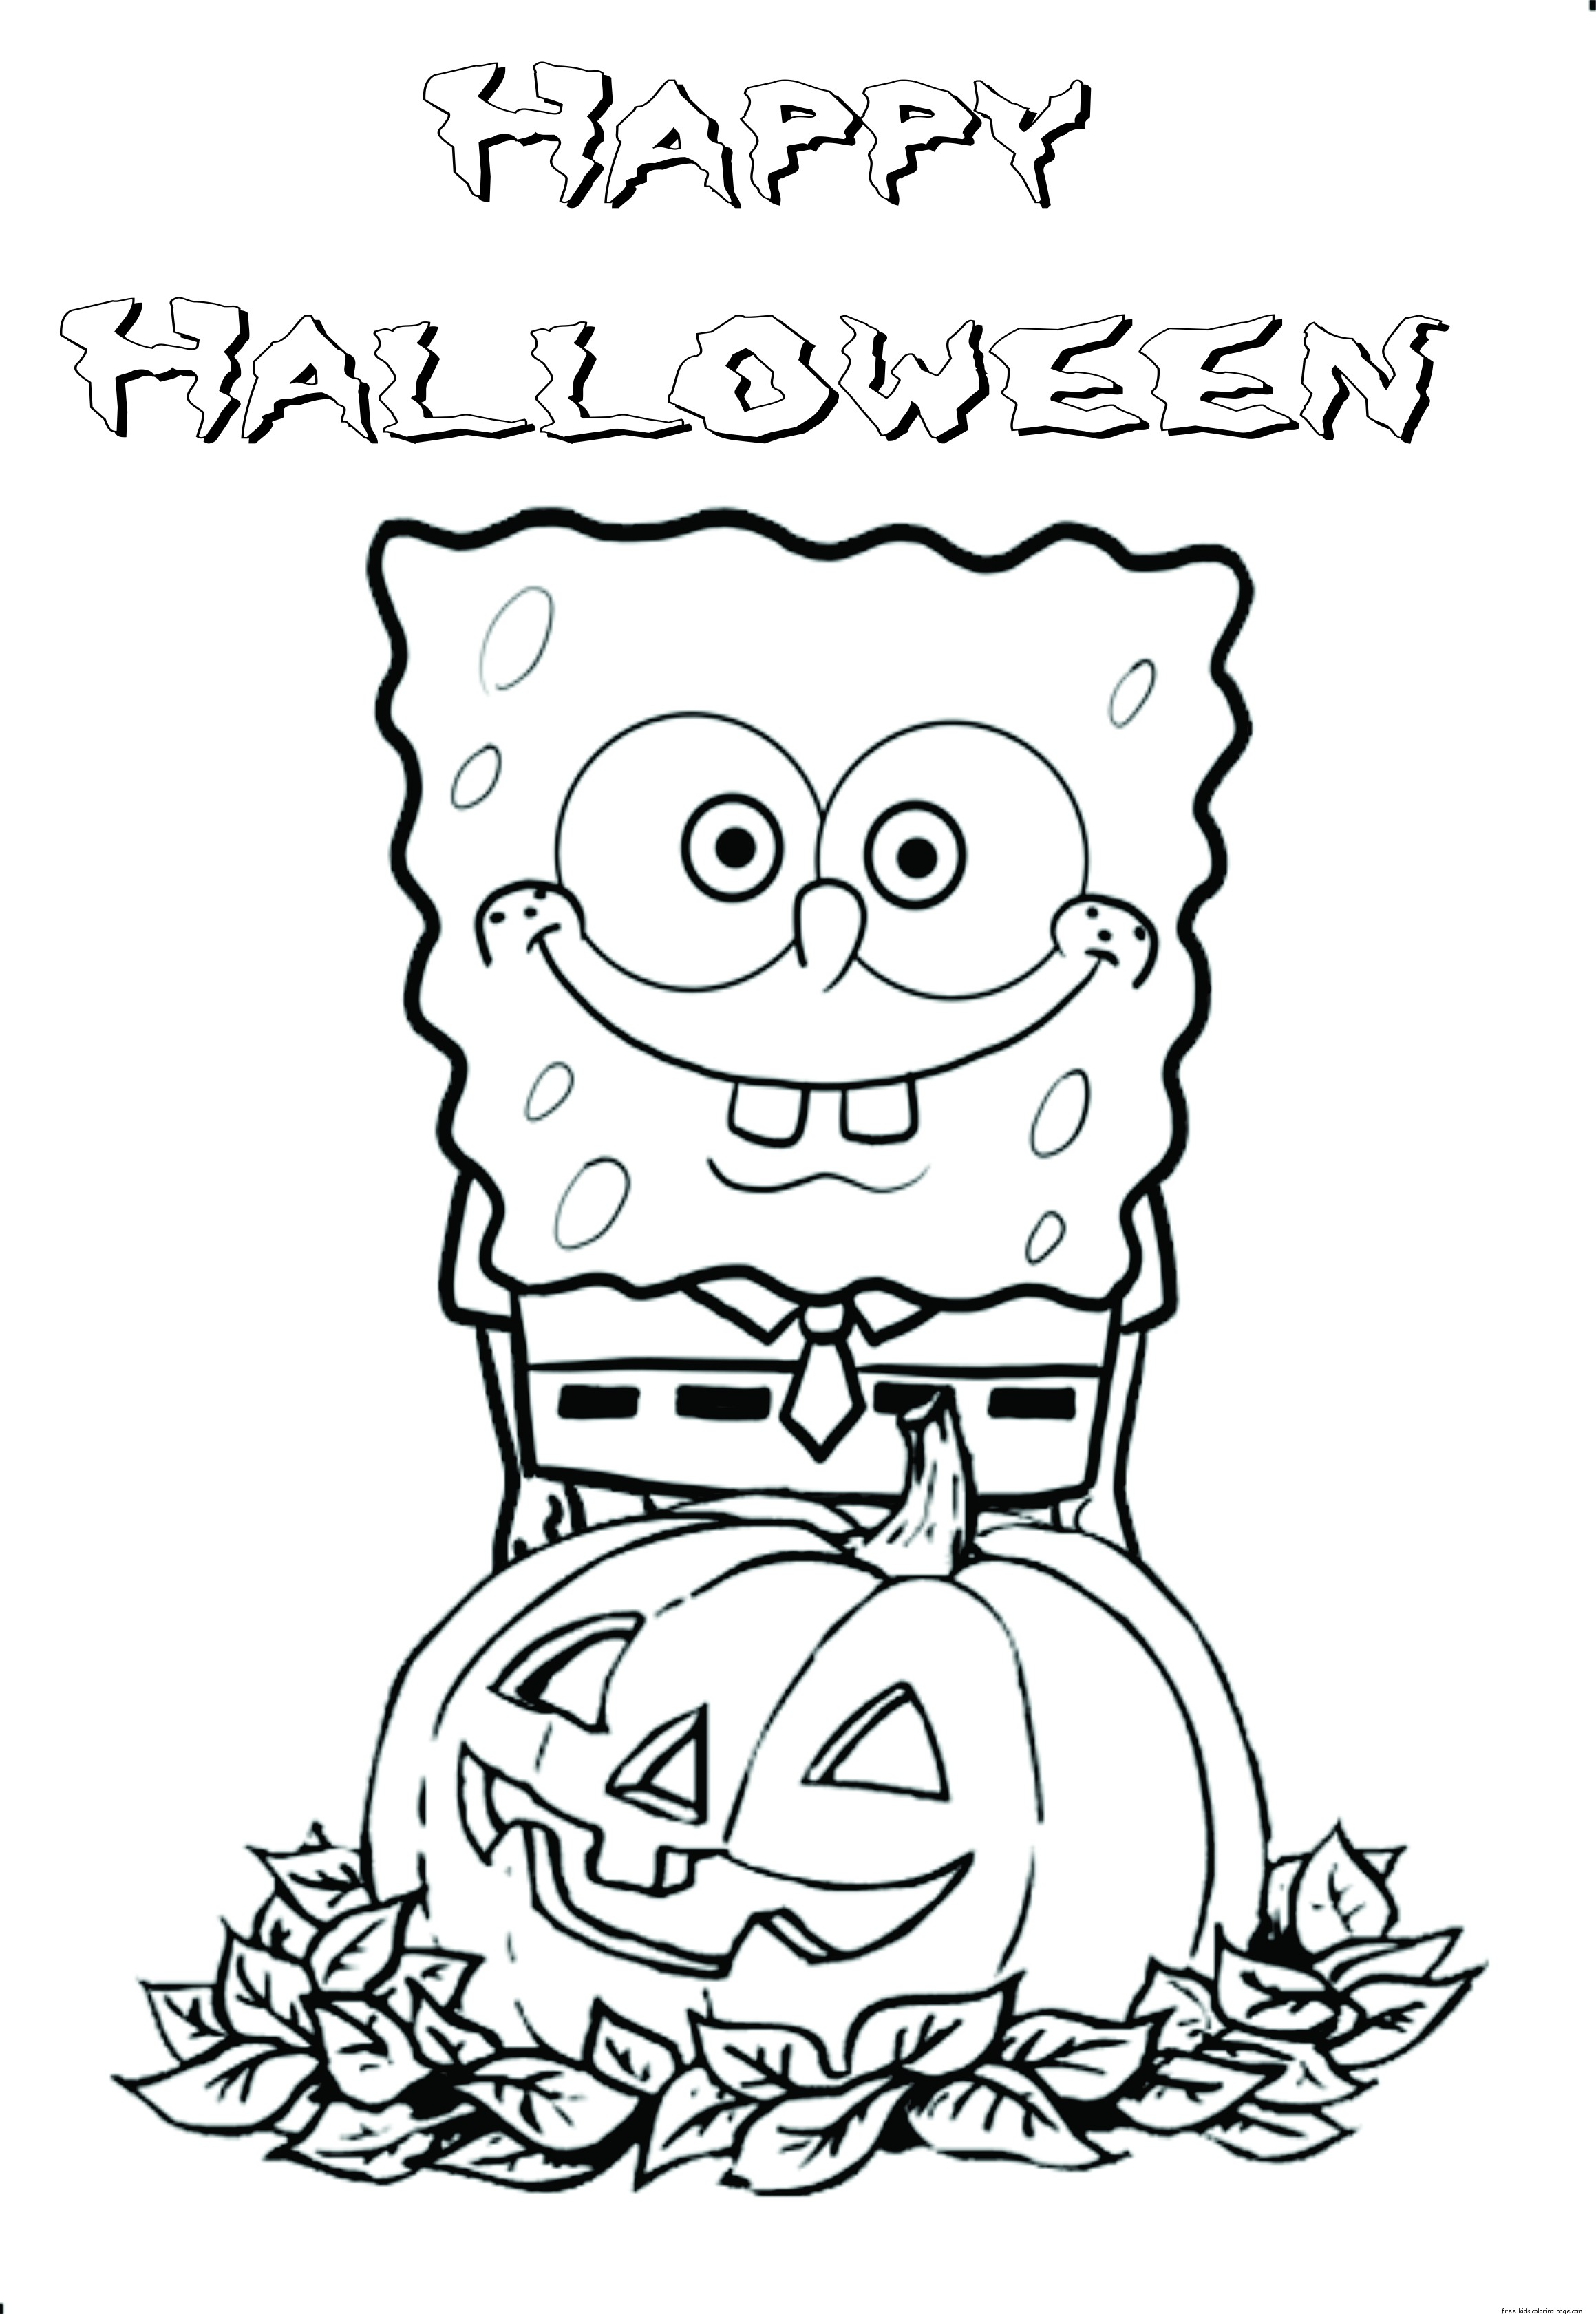 Printable Halloween Spongebob Coloring Pagesfree Printable Coloring Pages For Kids